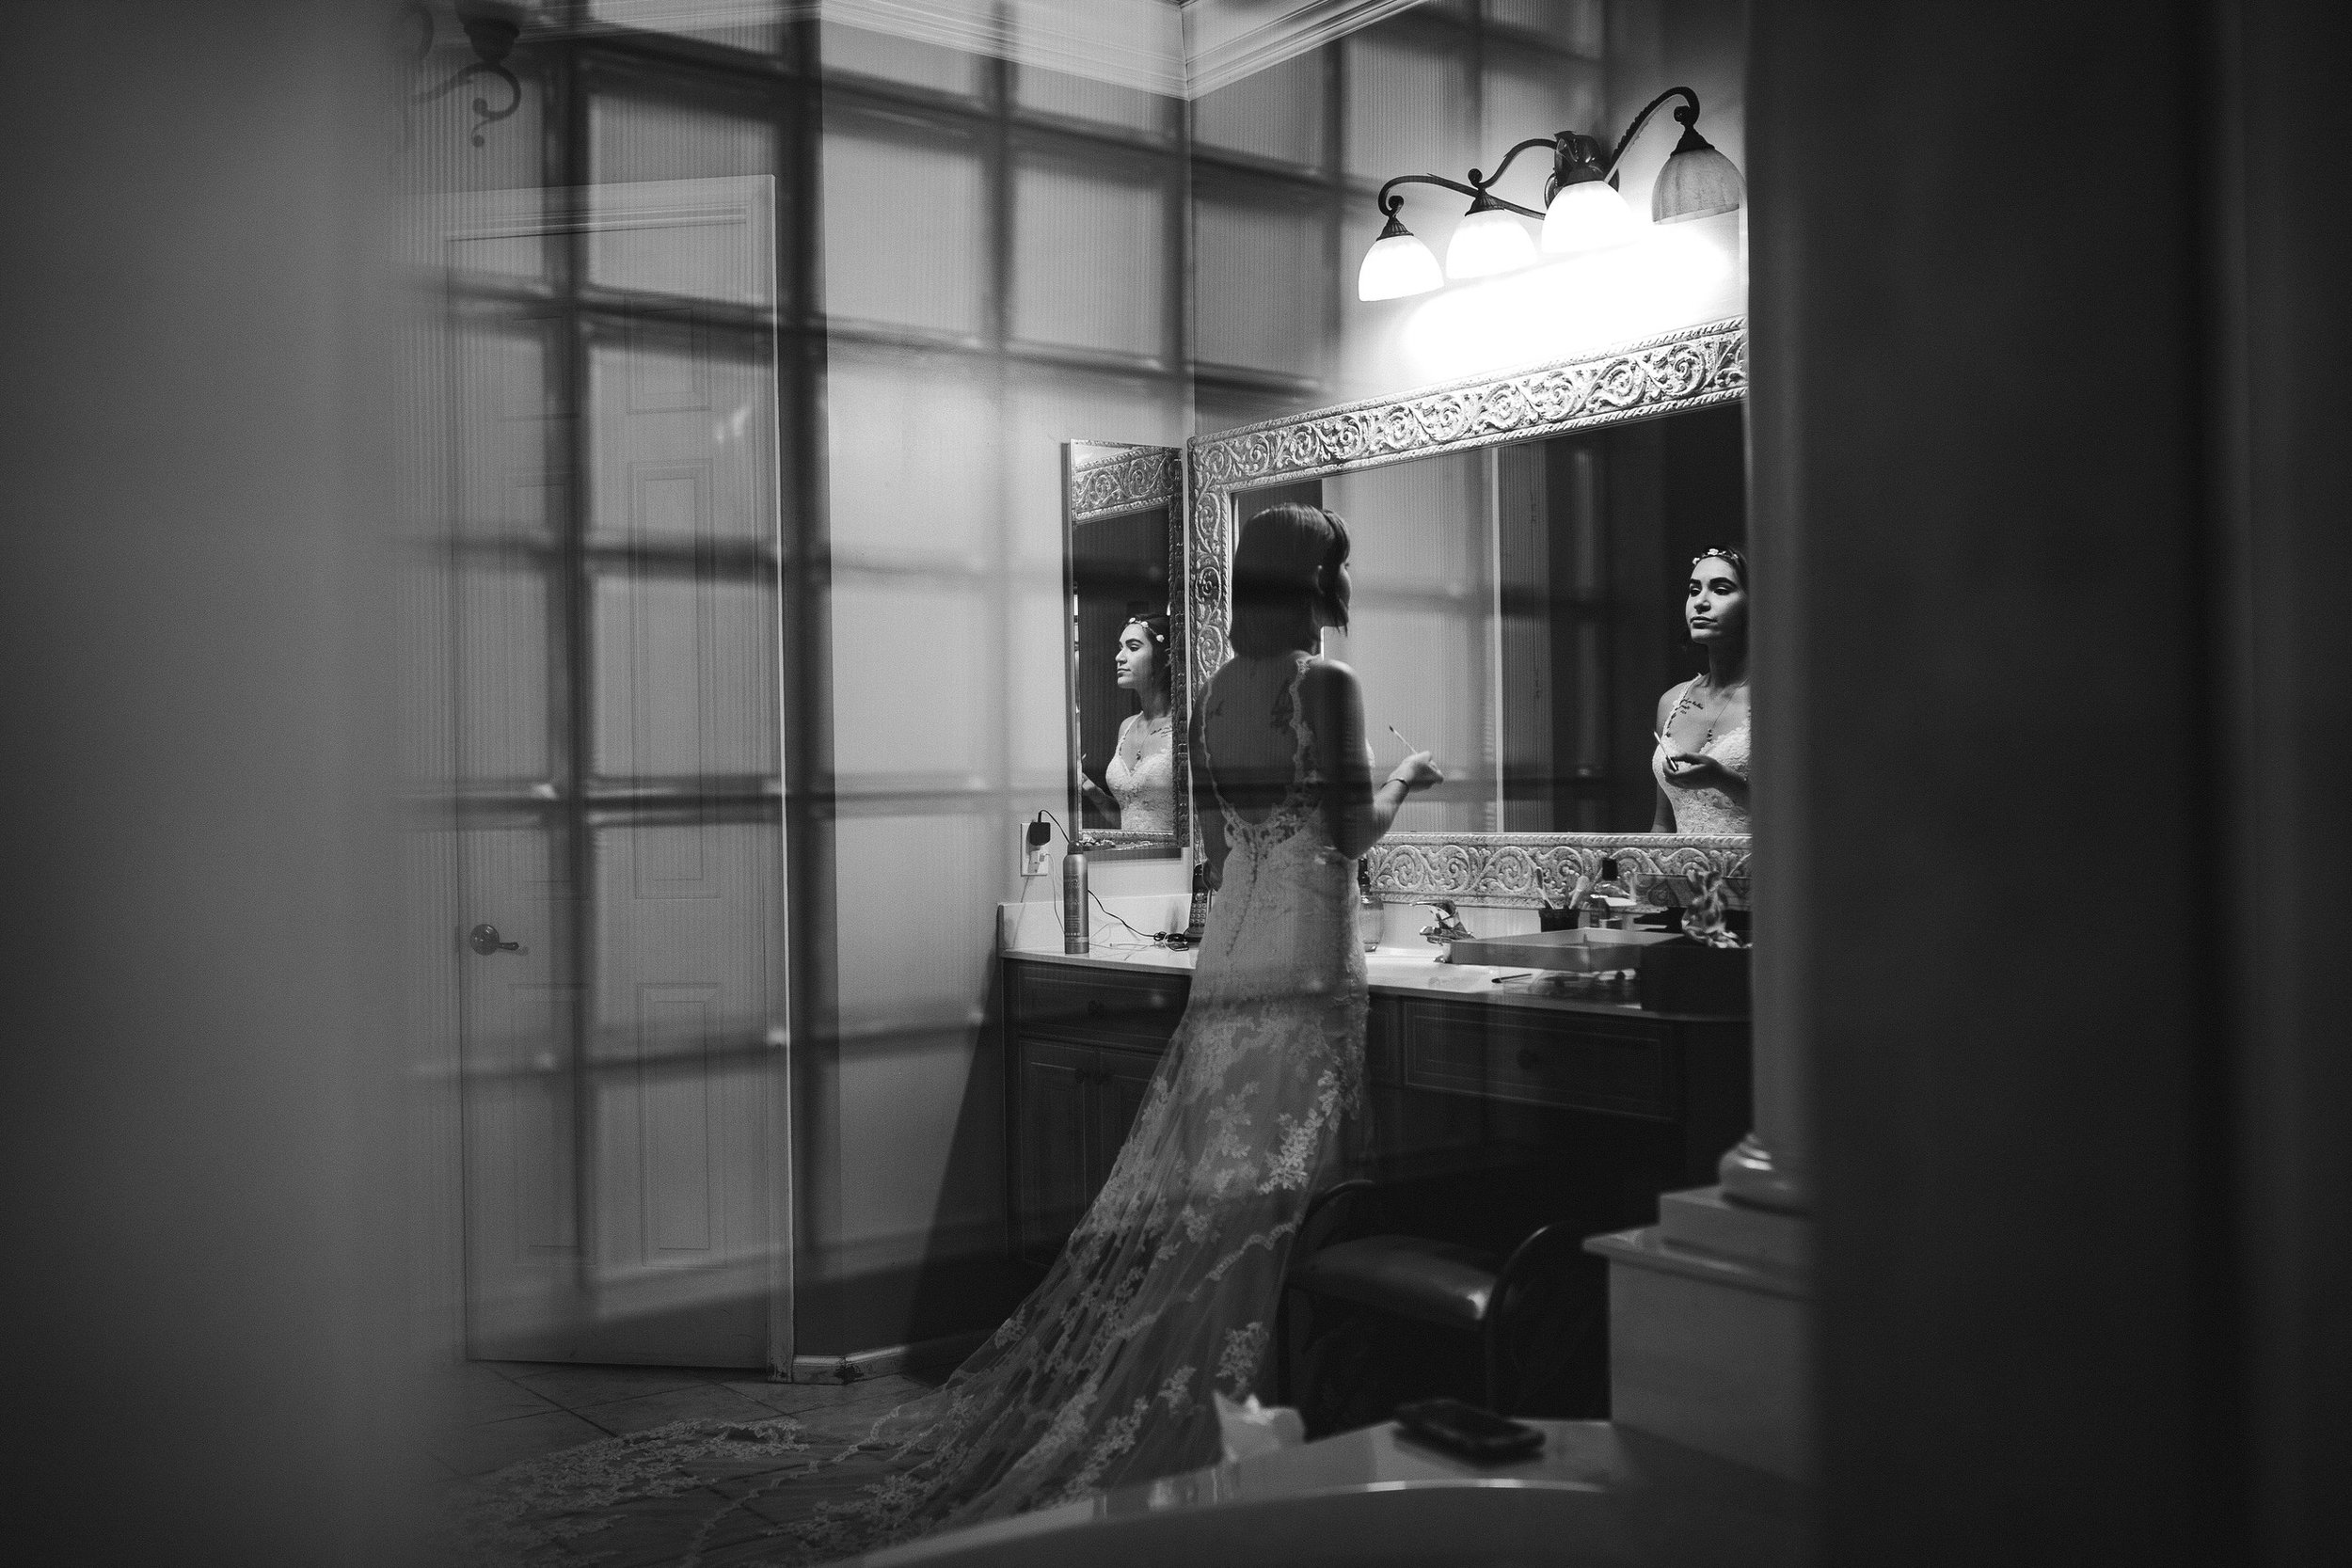 tiny_house_photo_bride_getting_ready_black_and_white.jpg